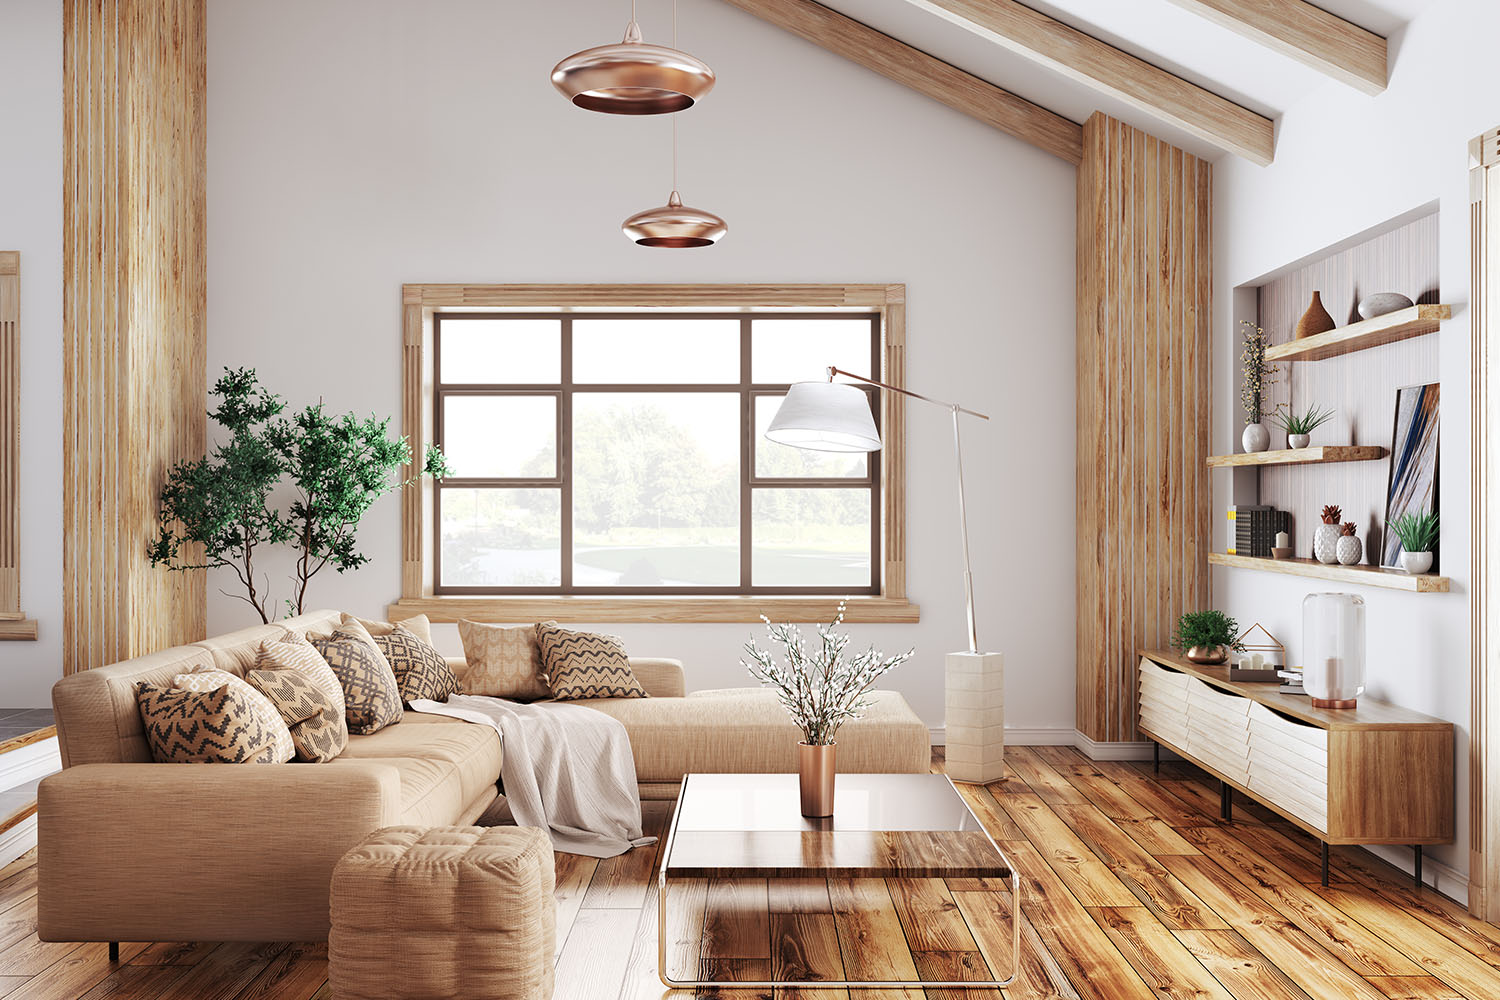 5 new home design trends we'll be seeing in 2020 | Better ...